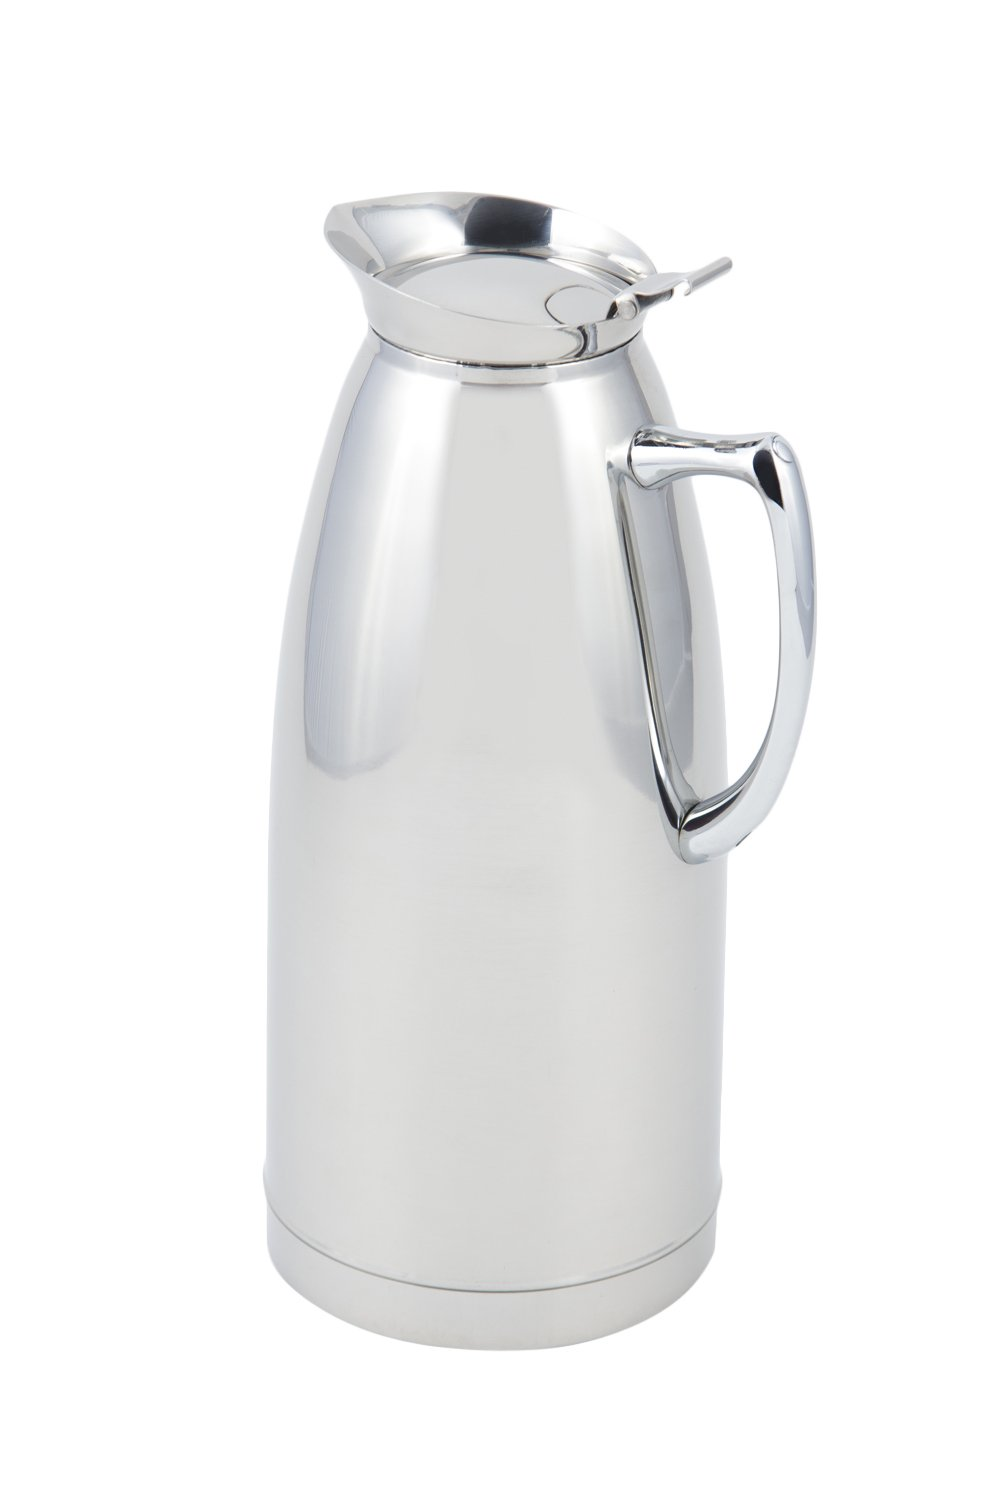 Bon Chef 4053 Stainless Steel Insulated Server, 64-Ounce Capacity